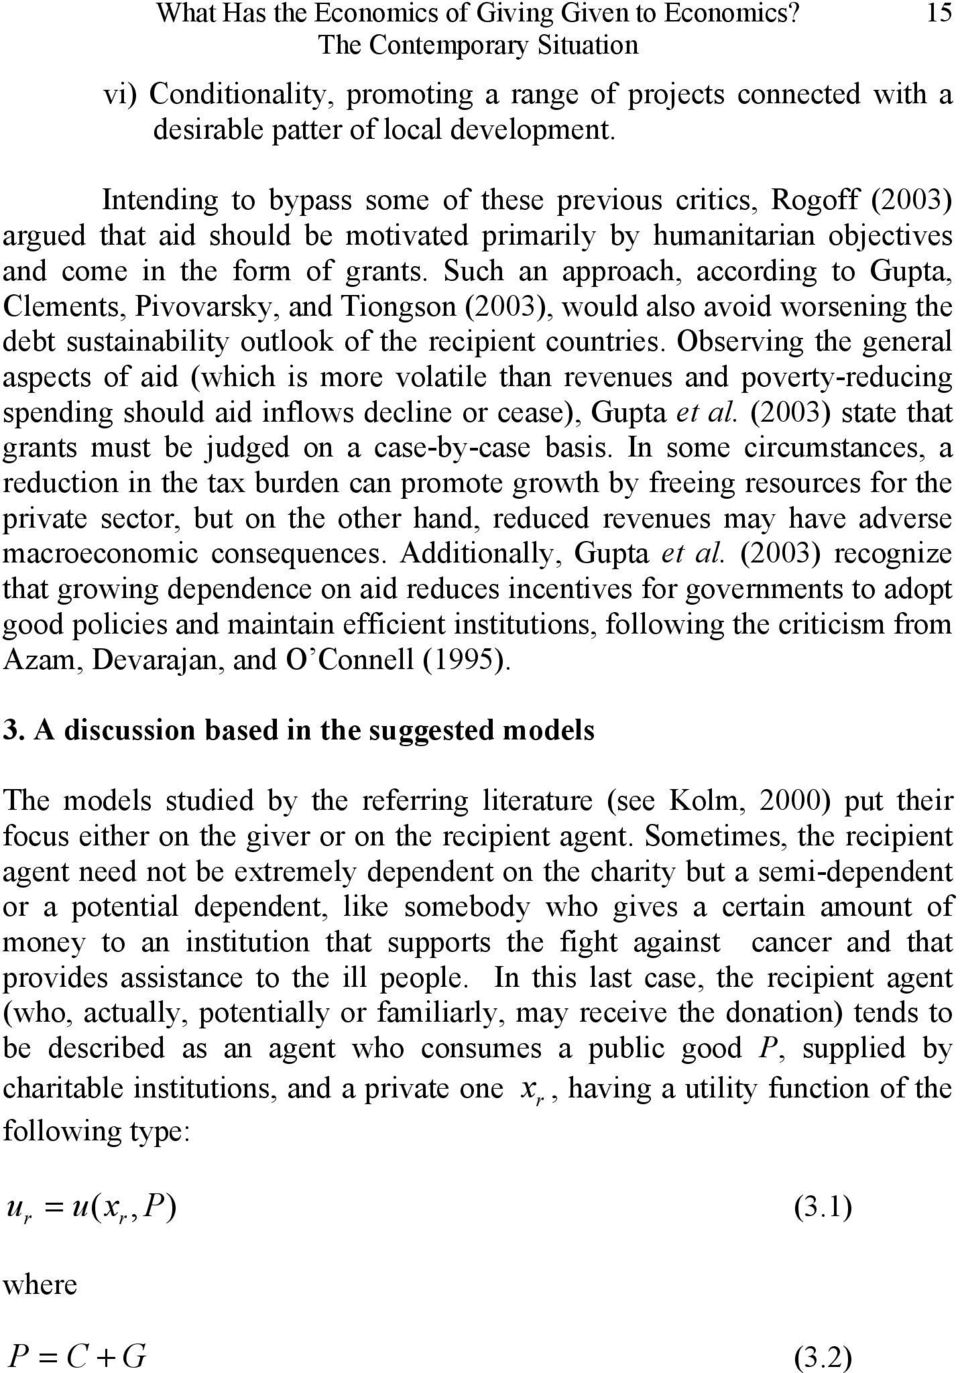 Such an approach, according to Gupta, Clements, Pivovarsky, and Tiongson (2003), would also avoid worsening the debt sustainability outlook of the recipient countries.